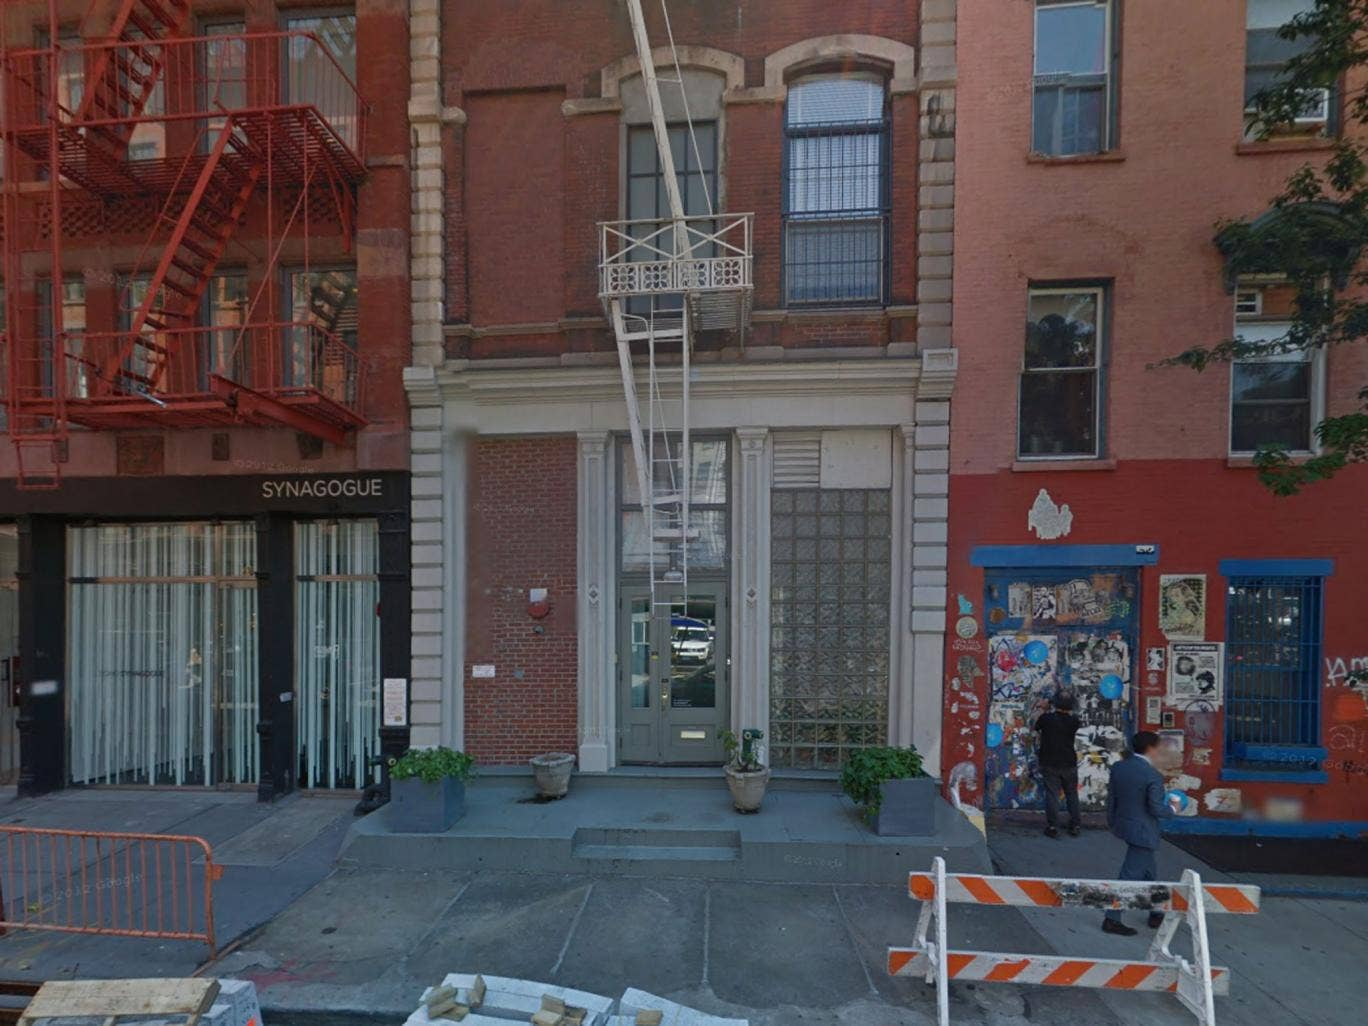 The incident happened in a building on SoHo's Crosby Street